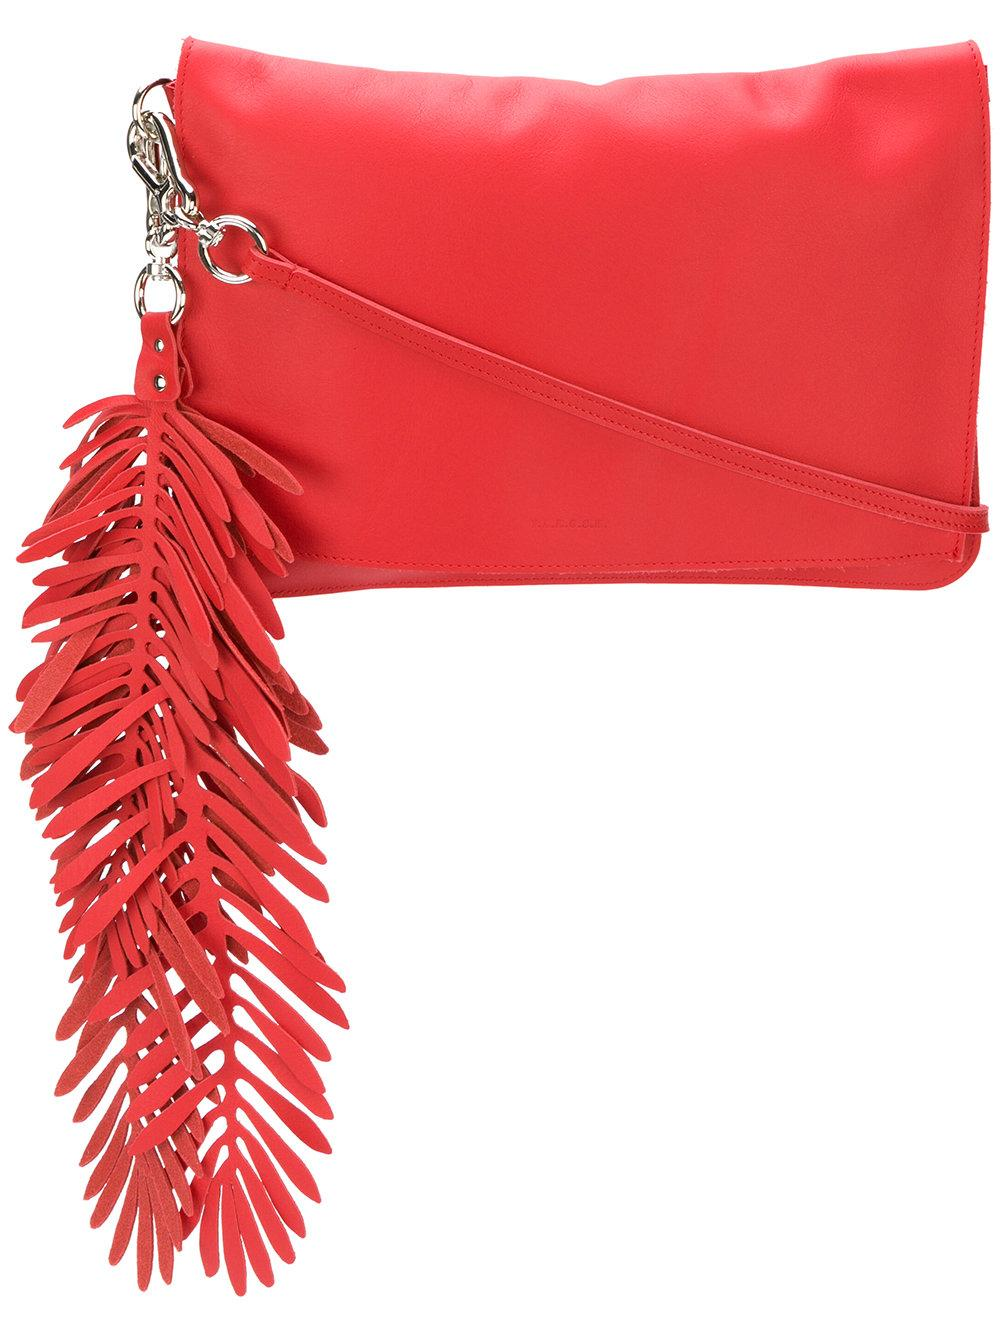 06797bfbe4 P.A.R.O.S.H. Coral Clutch Bag - Red